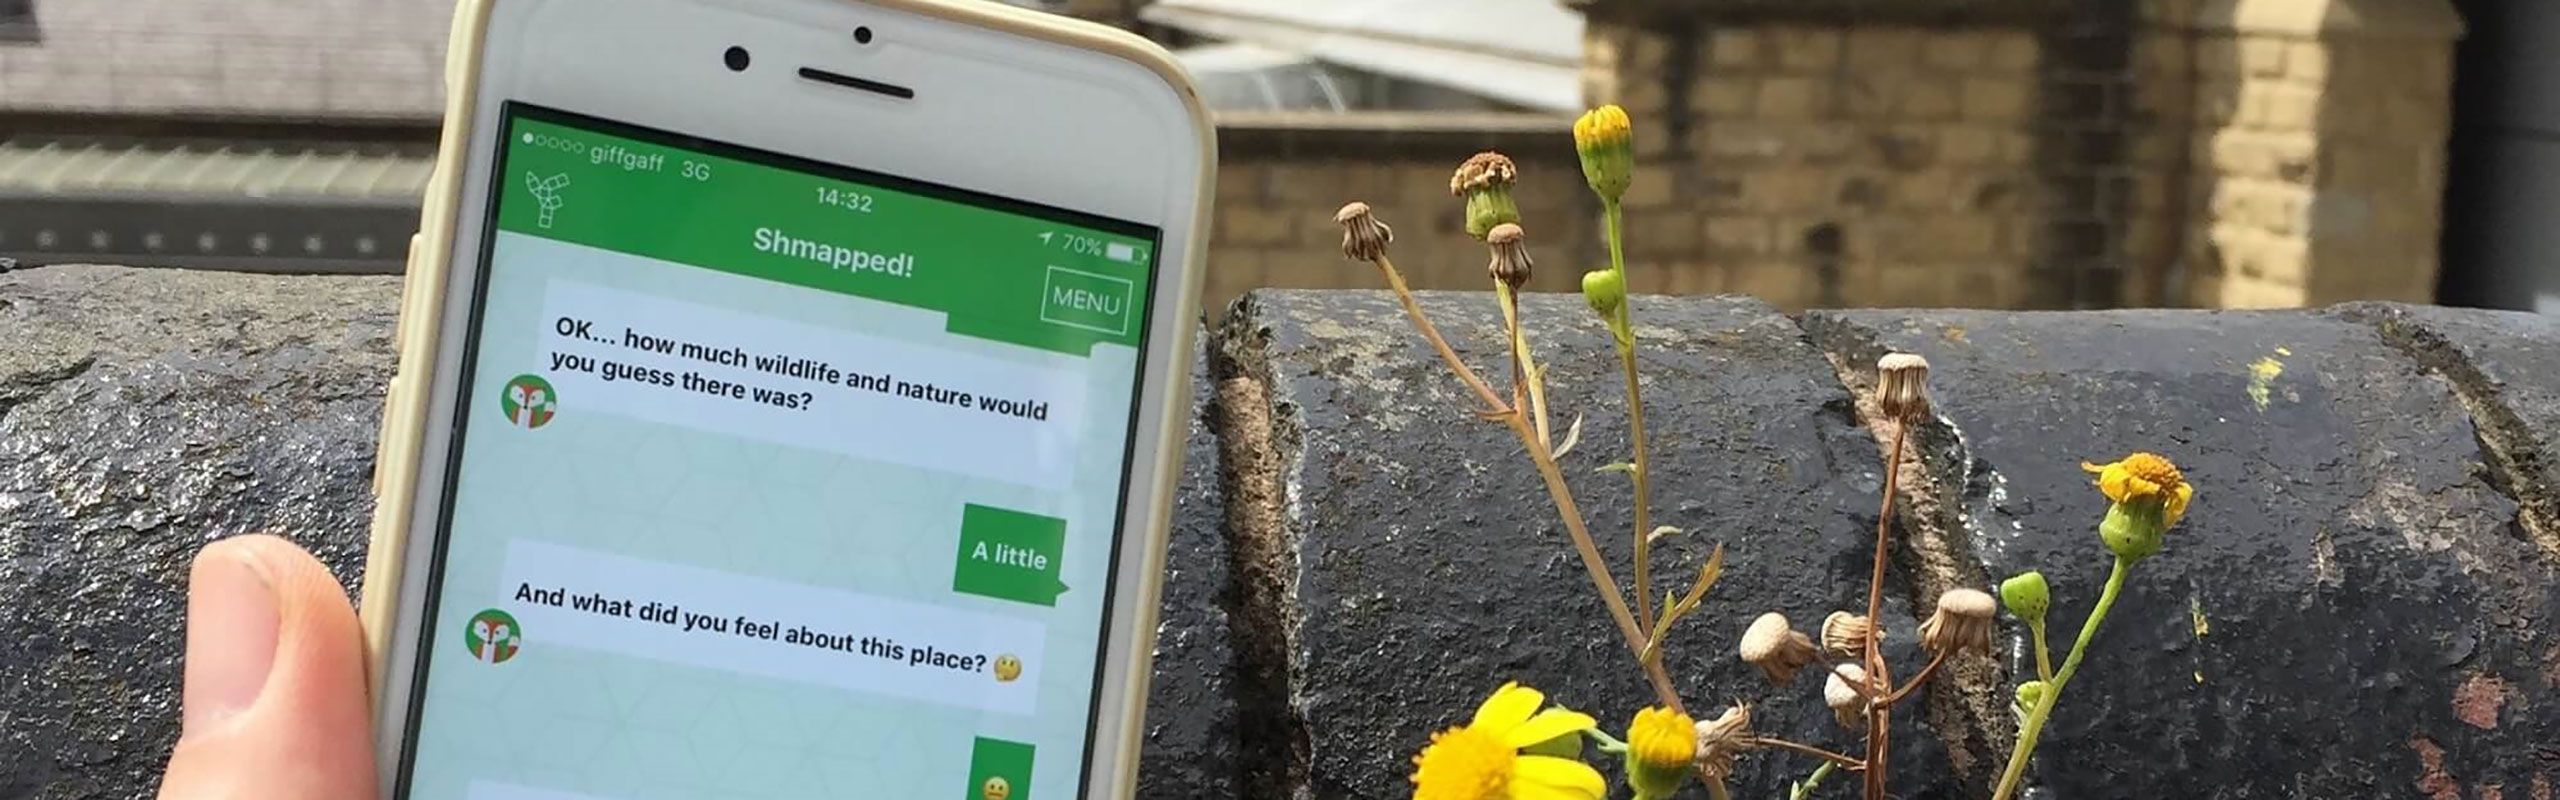 View of wellbeing app on iphone screen, with flowers in background